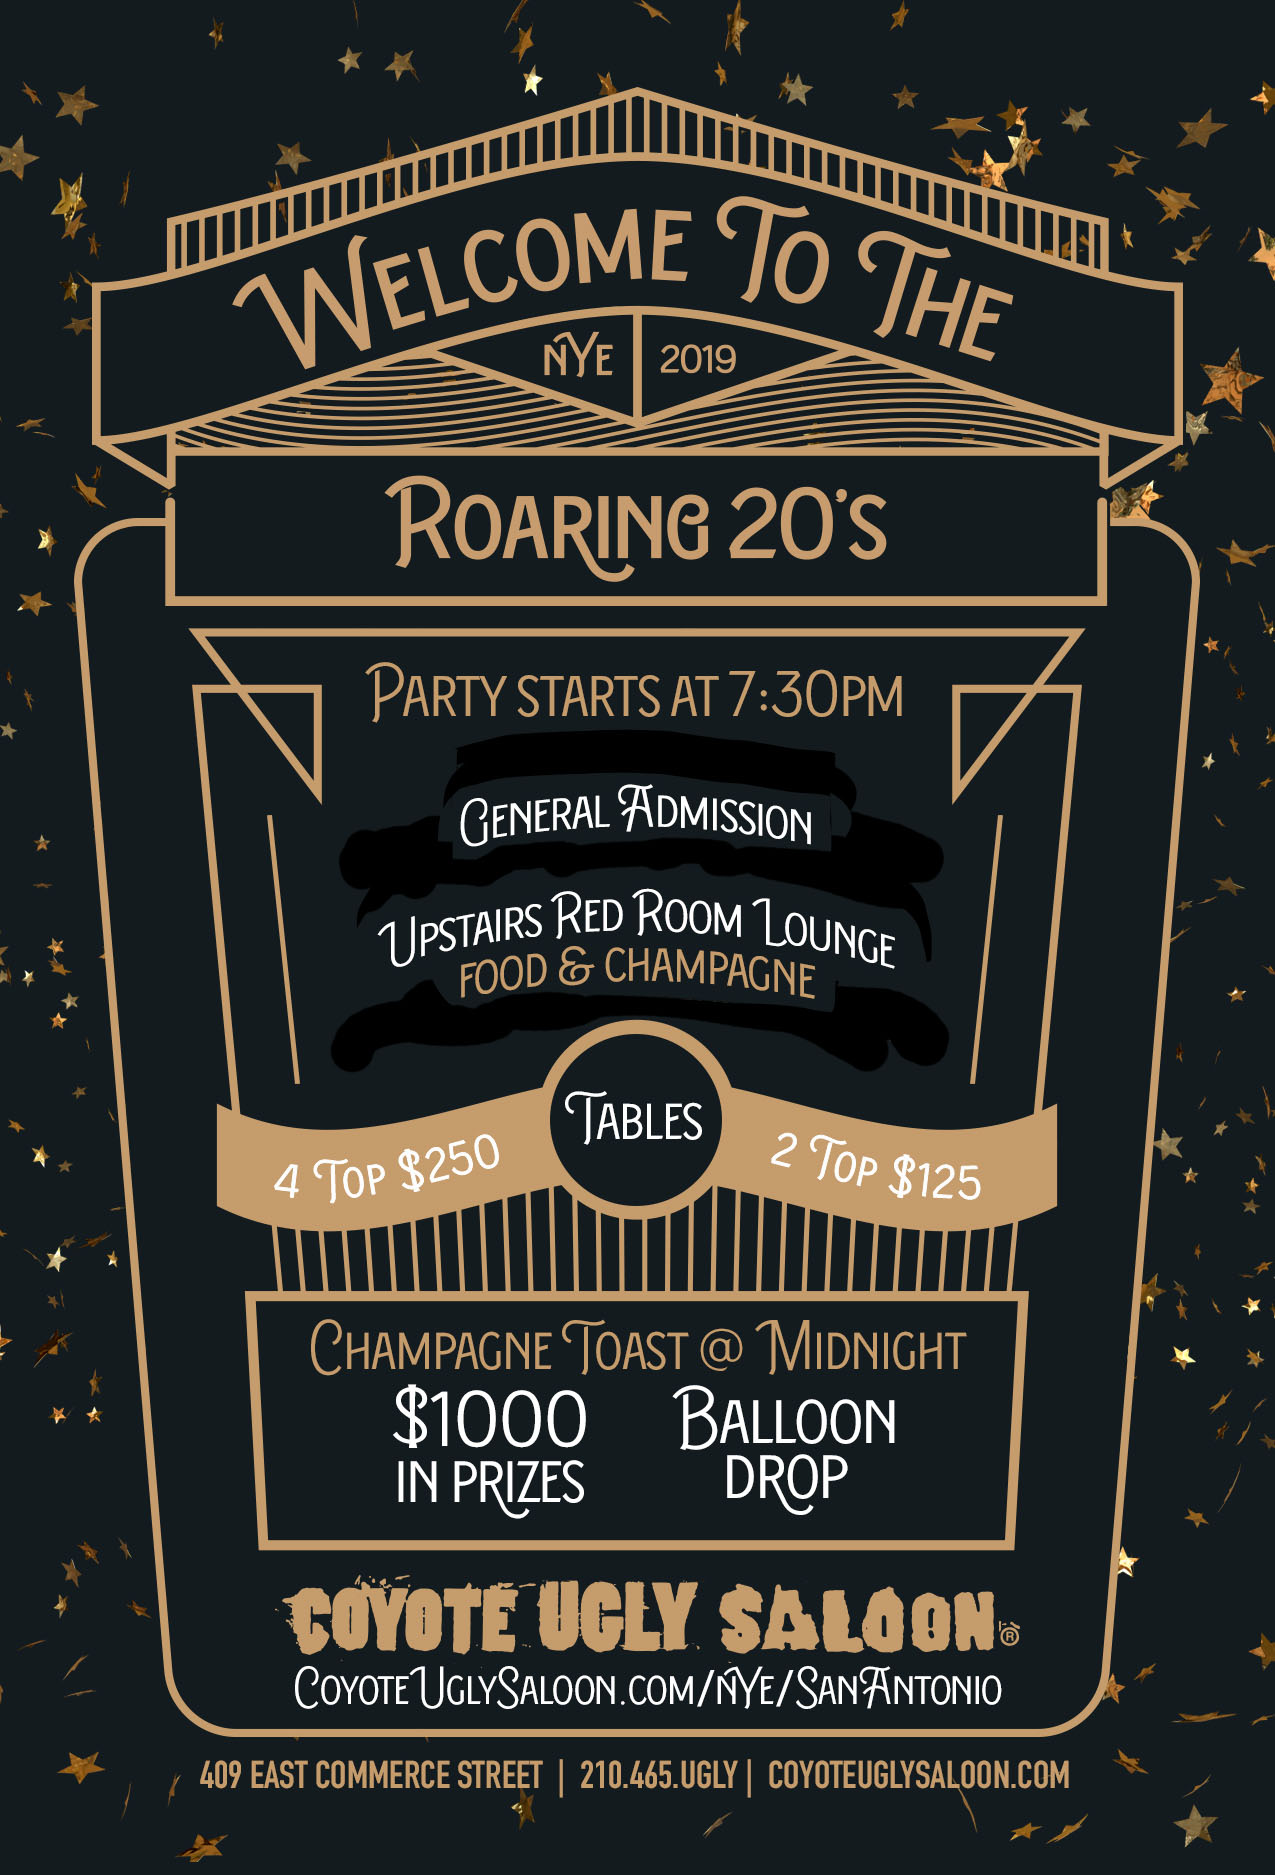 New Year's Eve – Welcome to the Roaring '20s in San Antonio on December 31, 2019